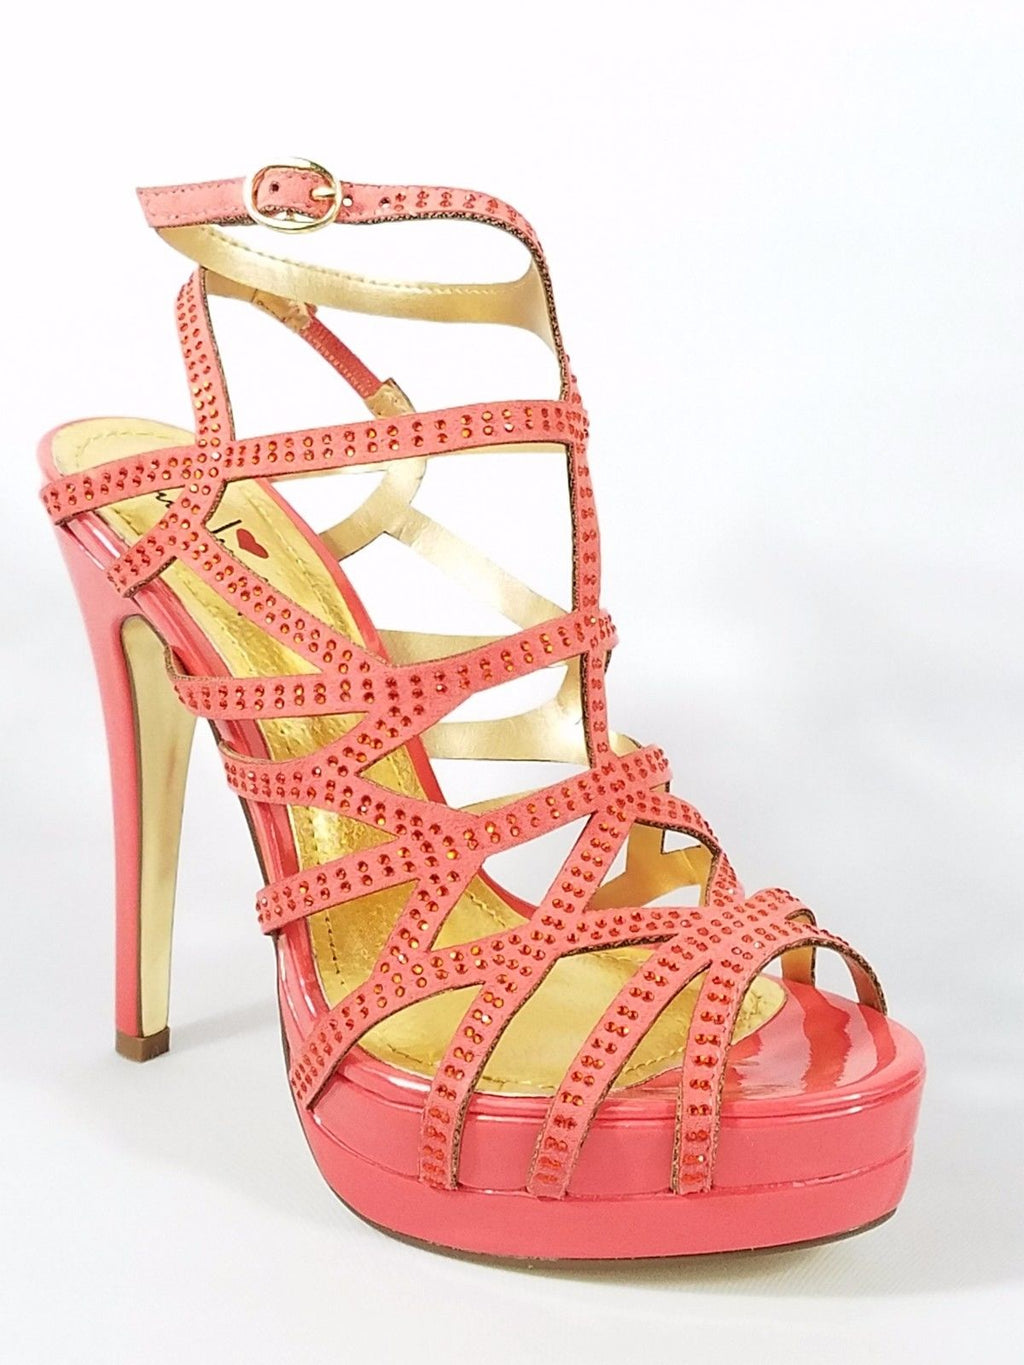 Luichiny Slingback Cut Out Rhinestone Strap Platform Sandal Shoe 7 -11 Coral Red